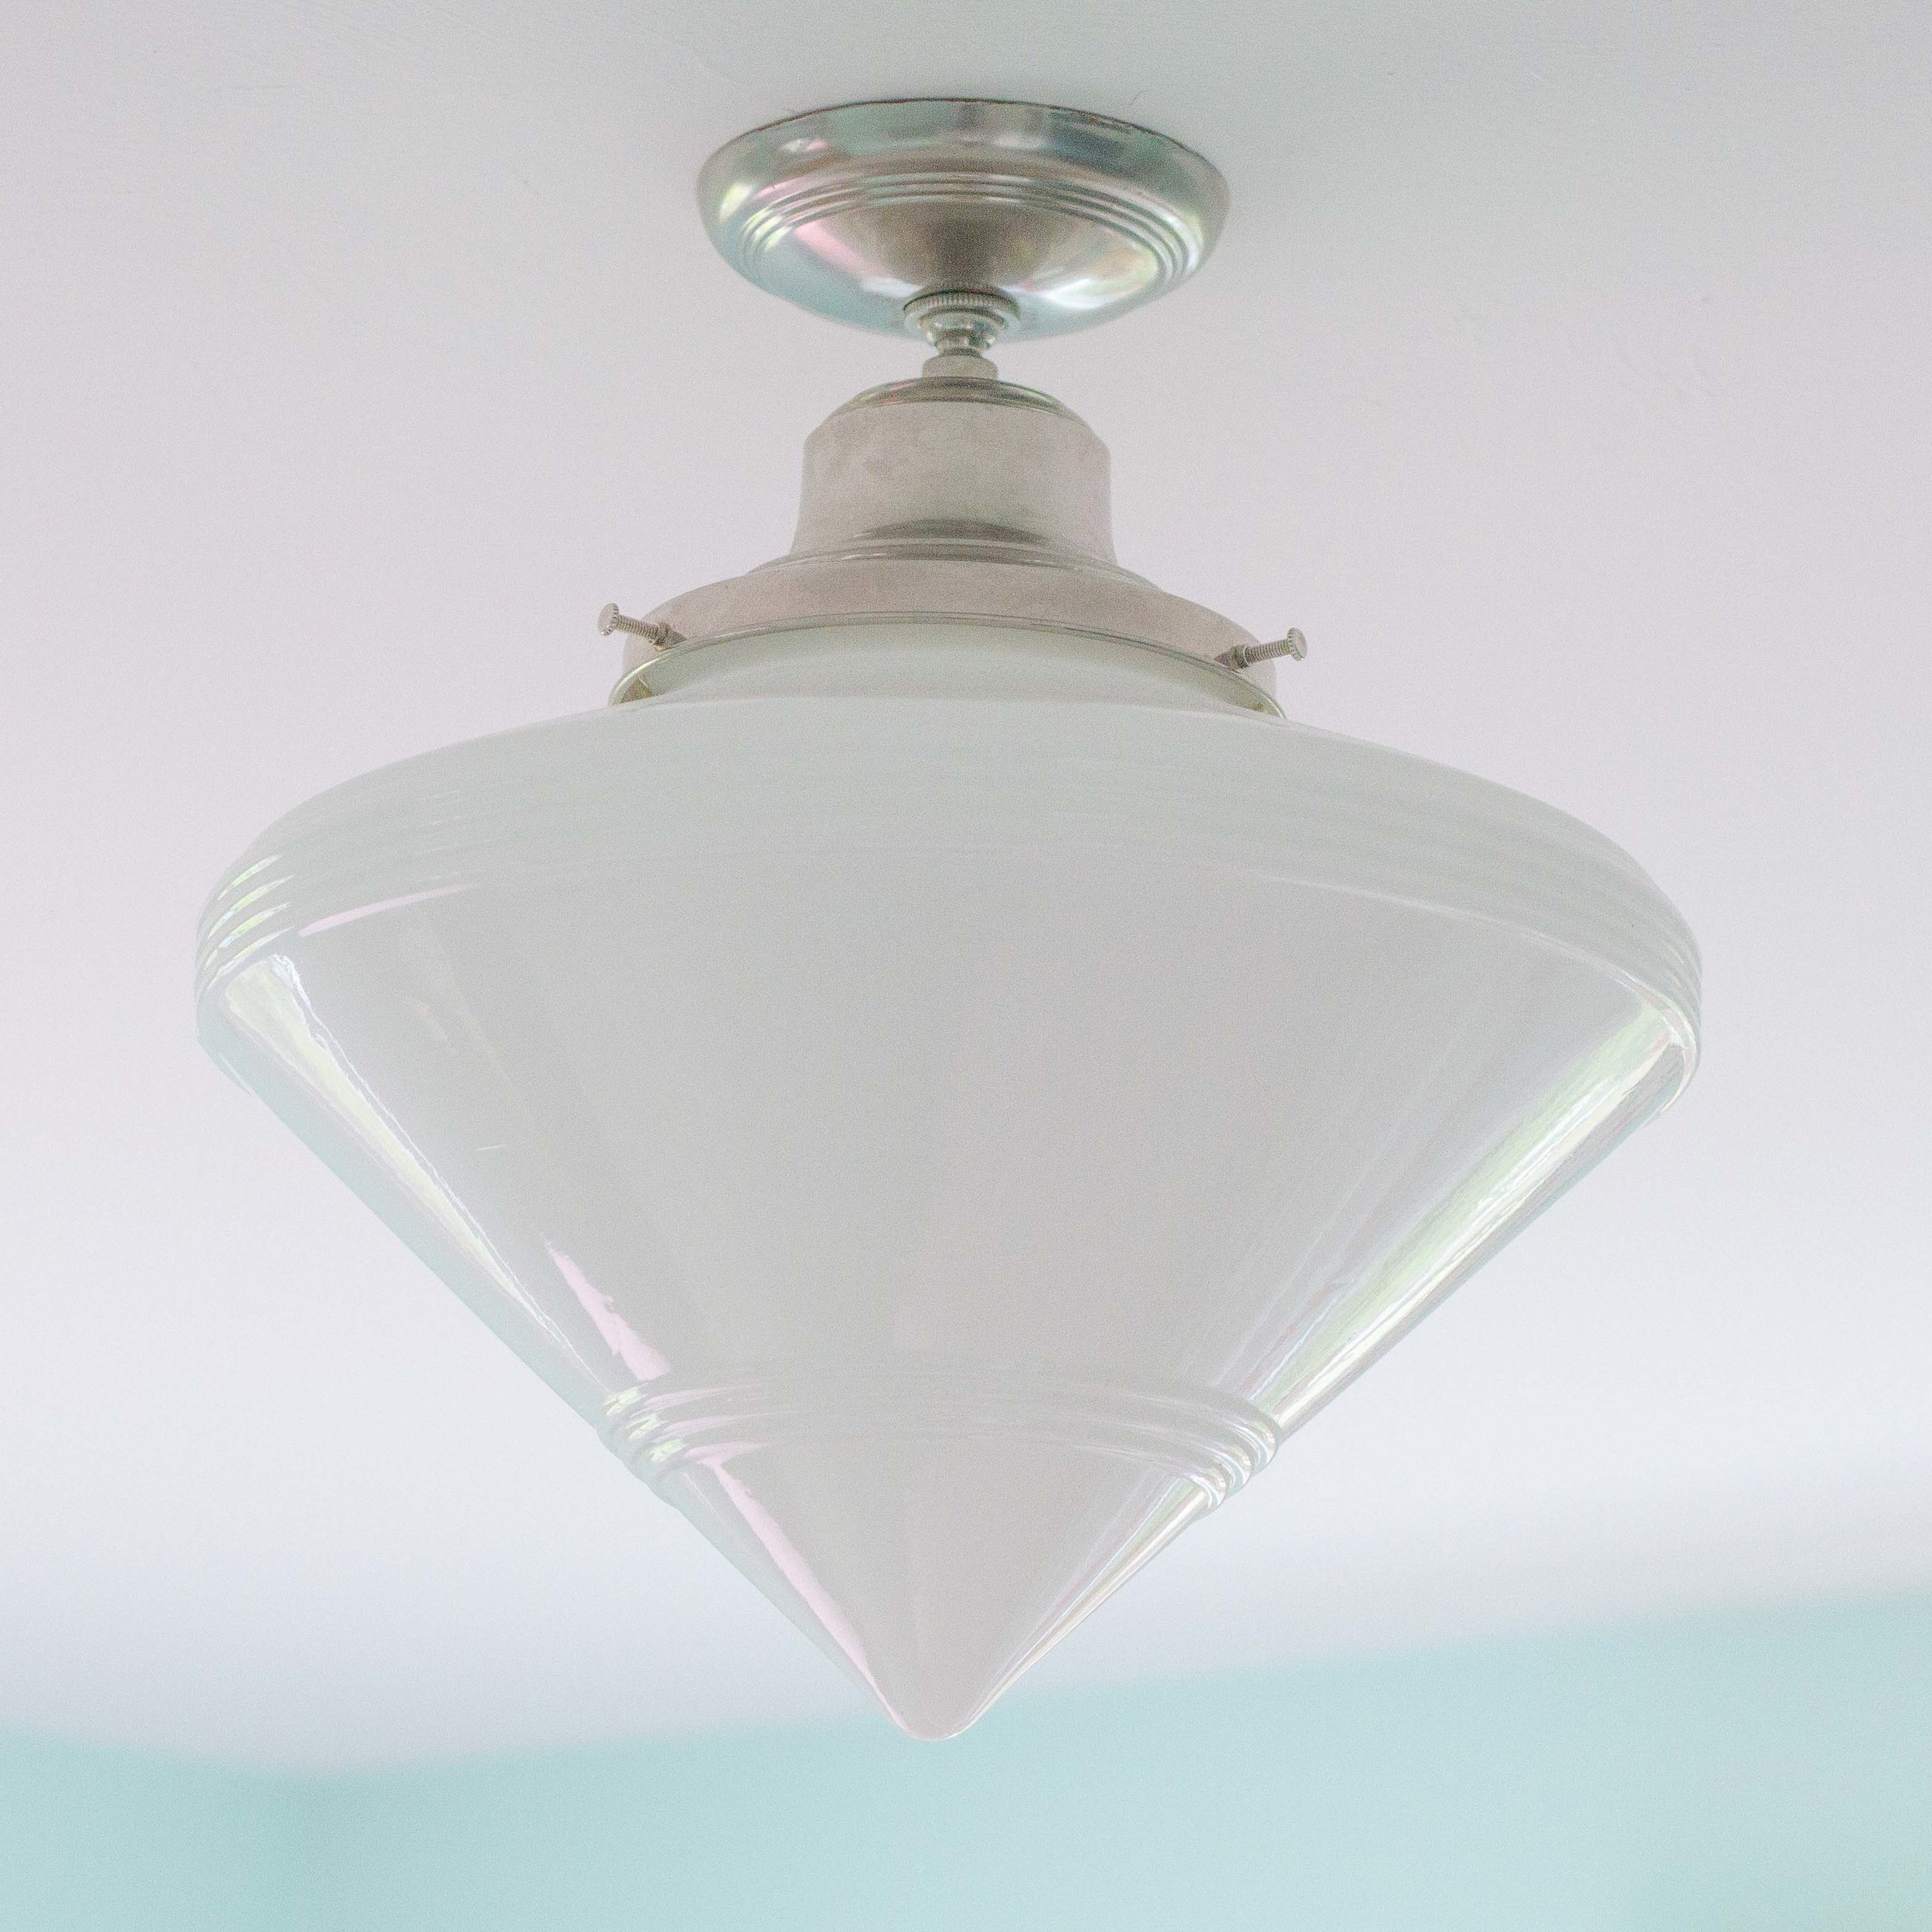 The retro-inspired ceiling fixture with a milk glass shade fits perfectly in this 1958 home.